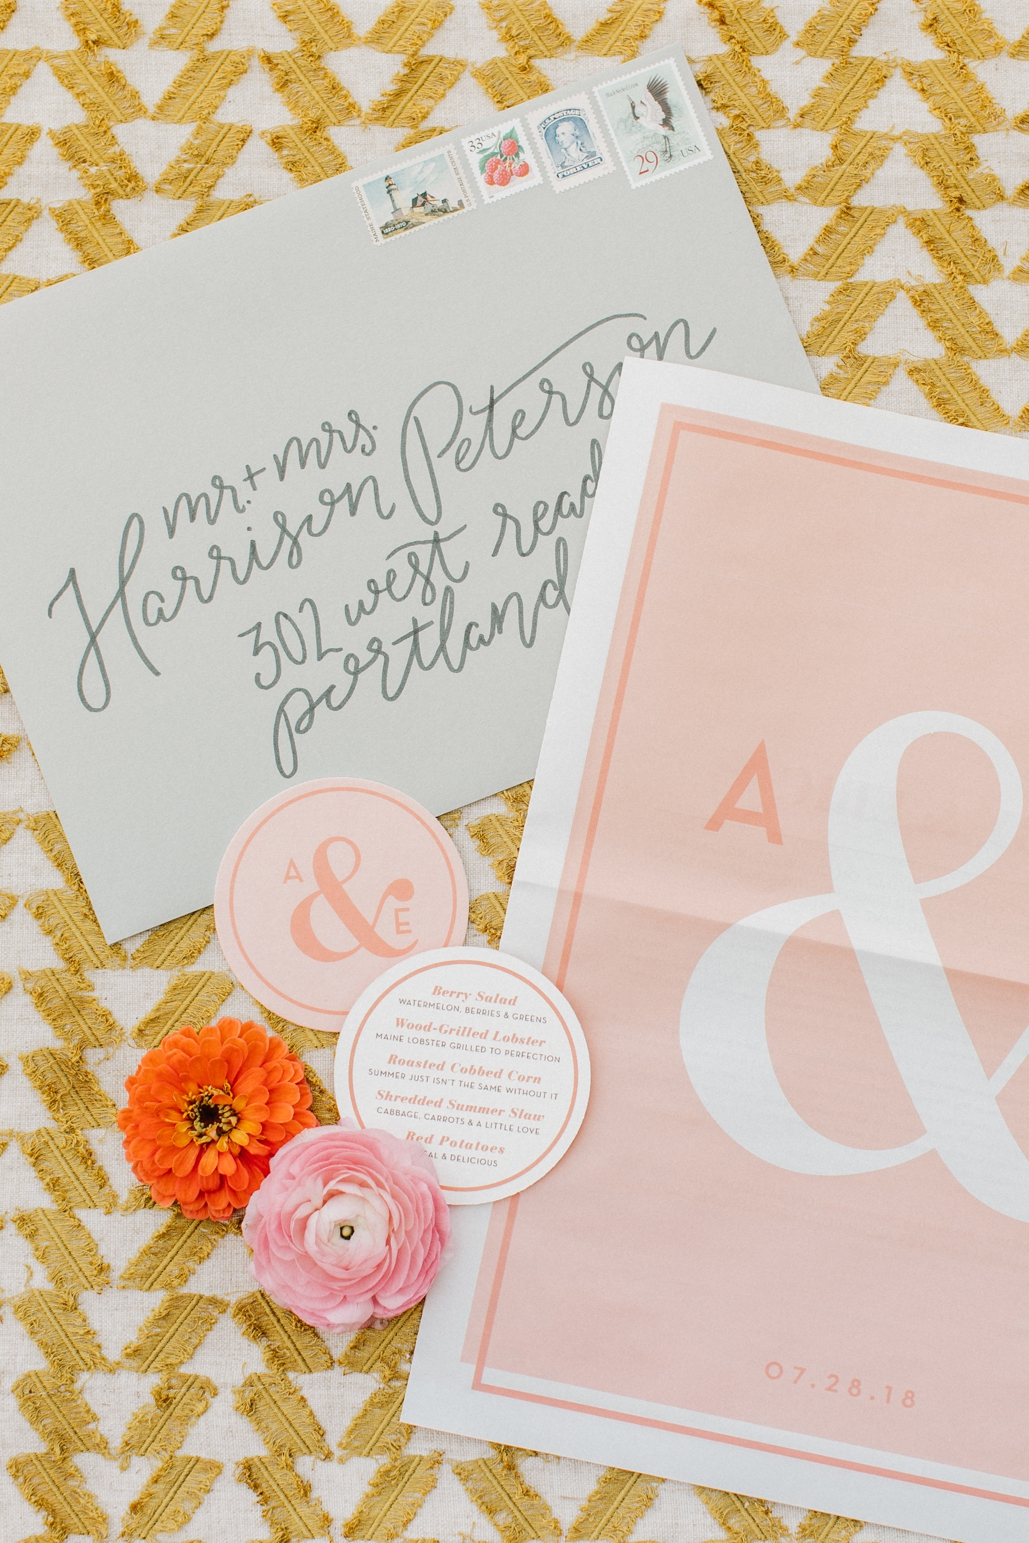 custom wedding invitation suite that is oversized for a surprising twist, luxury wedding invitations that are custom illustrated and designed